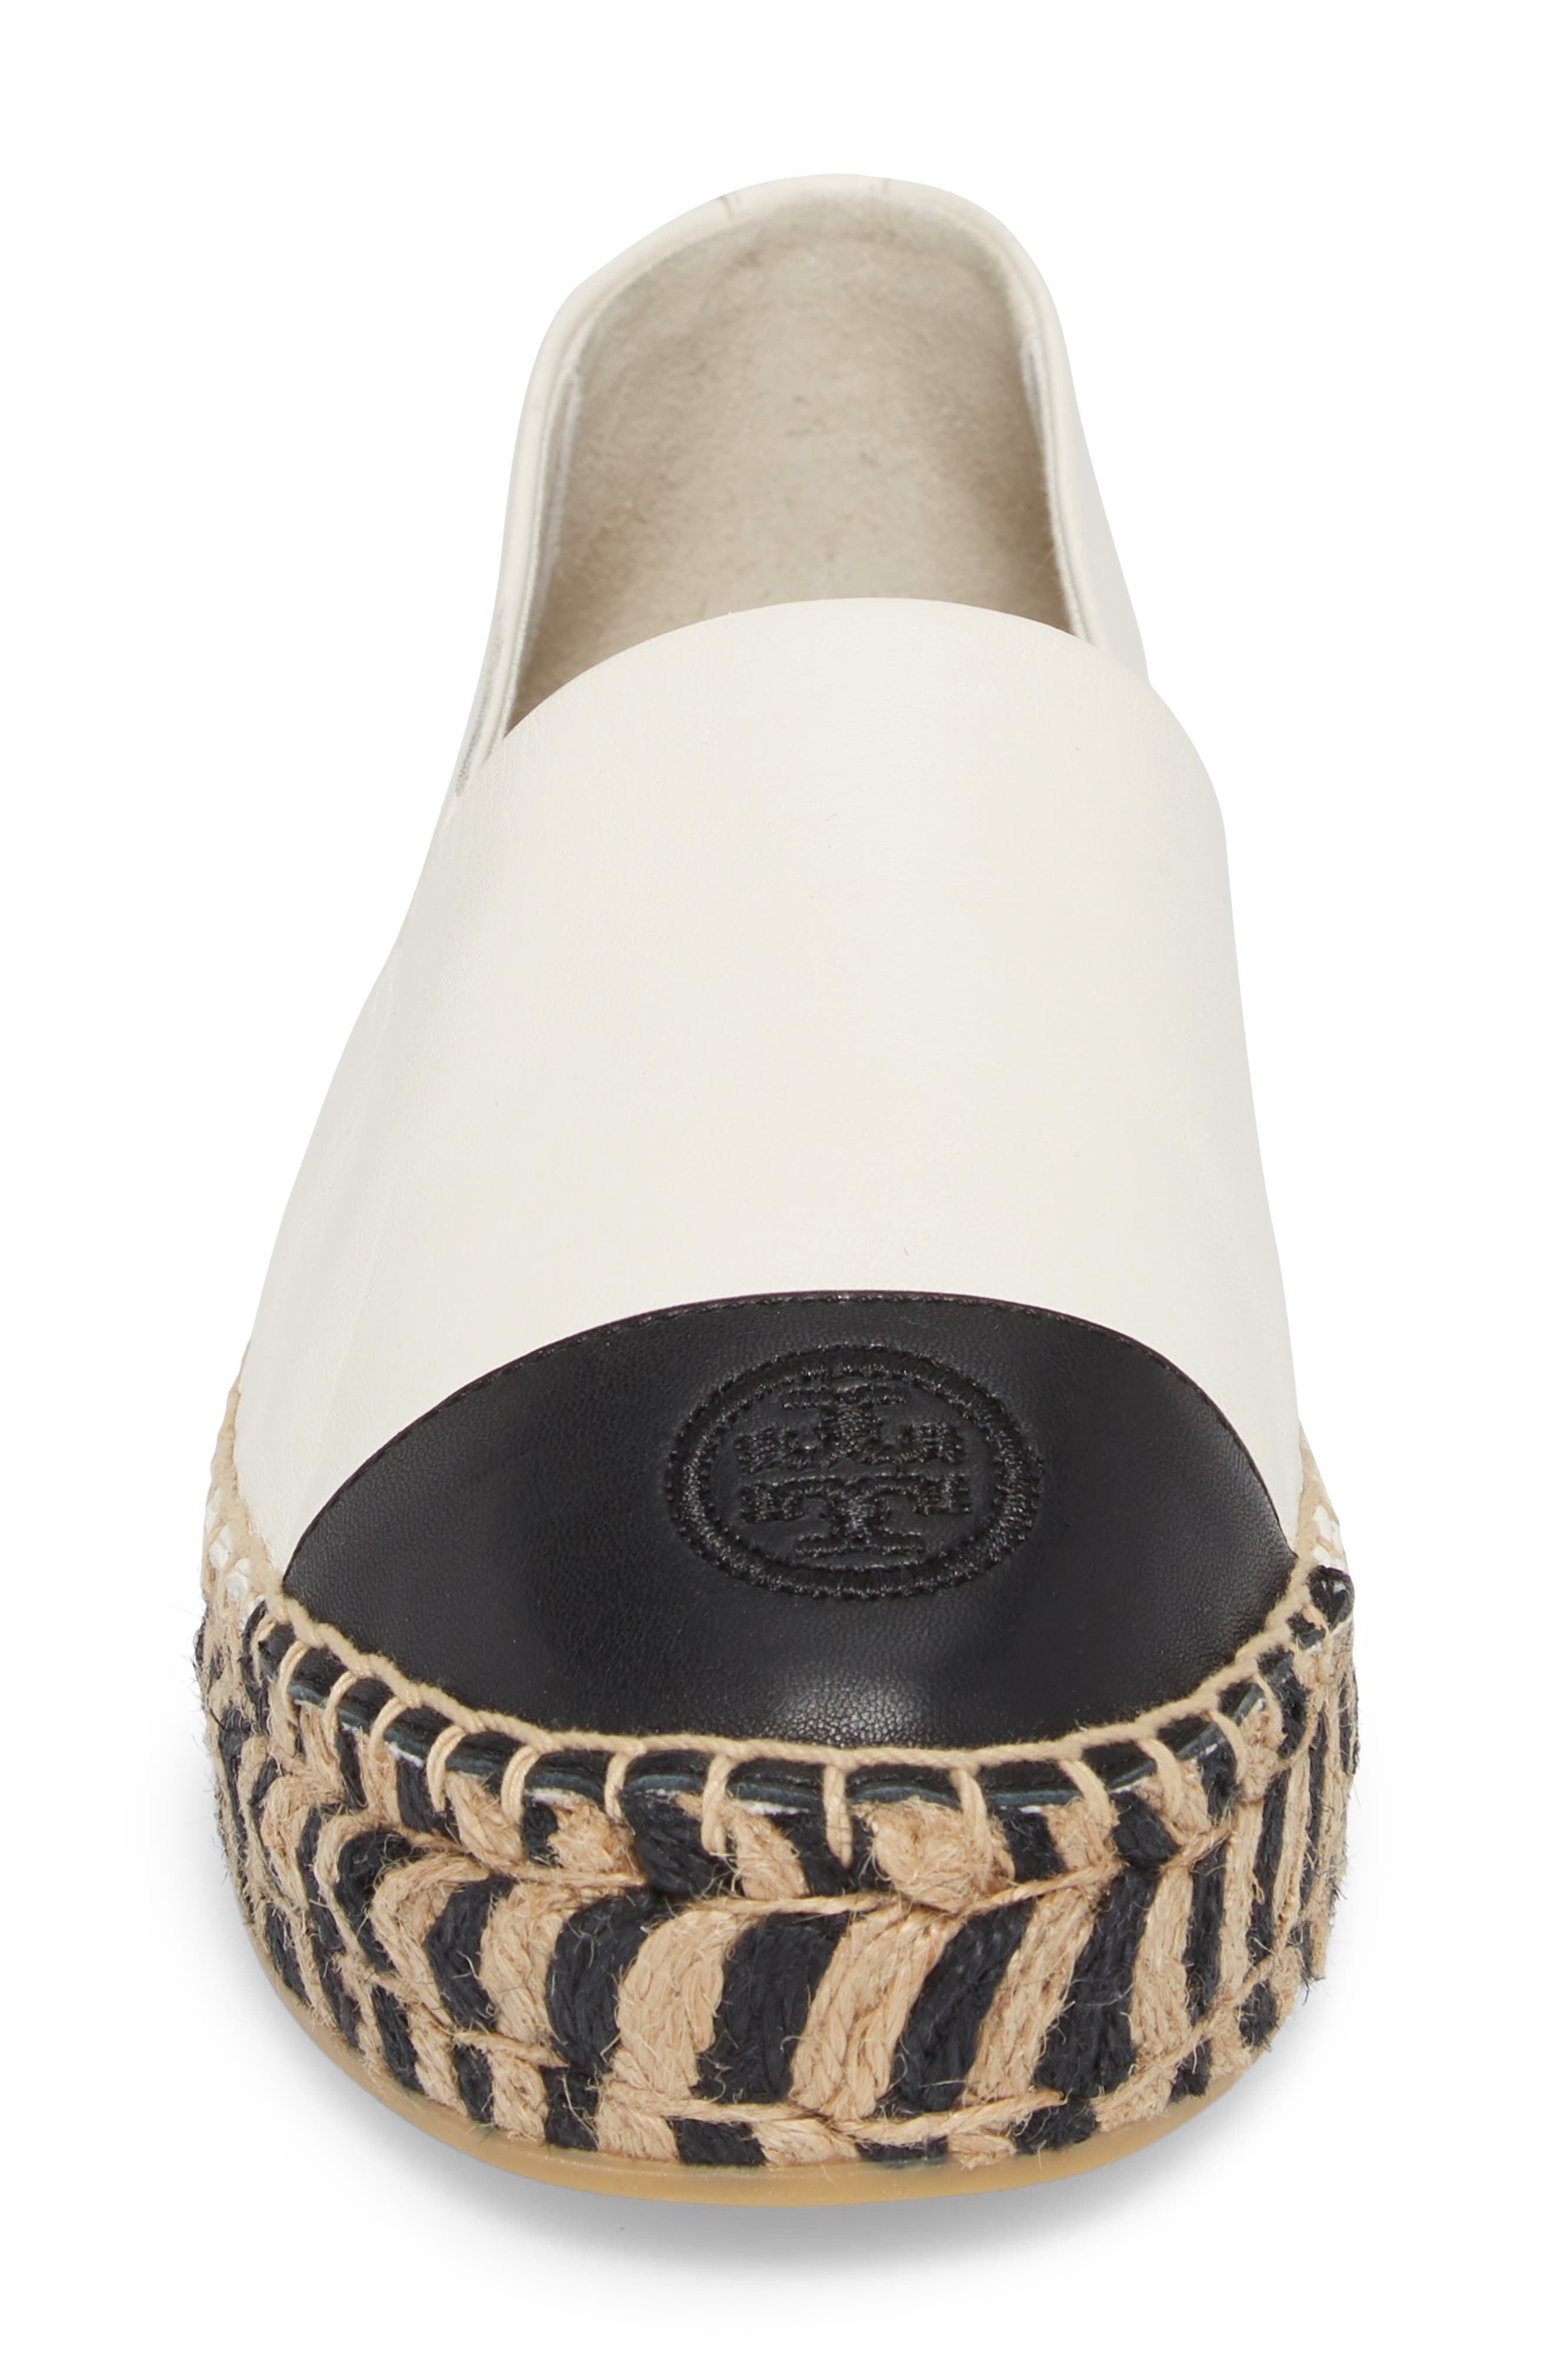 TORY BURCH, Colorblock Platform Espadrille, Alternate thumbnail 4, color, PERFECT IVORY/ PERFECT BLACK